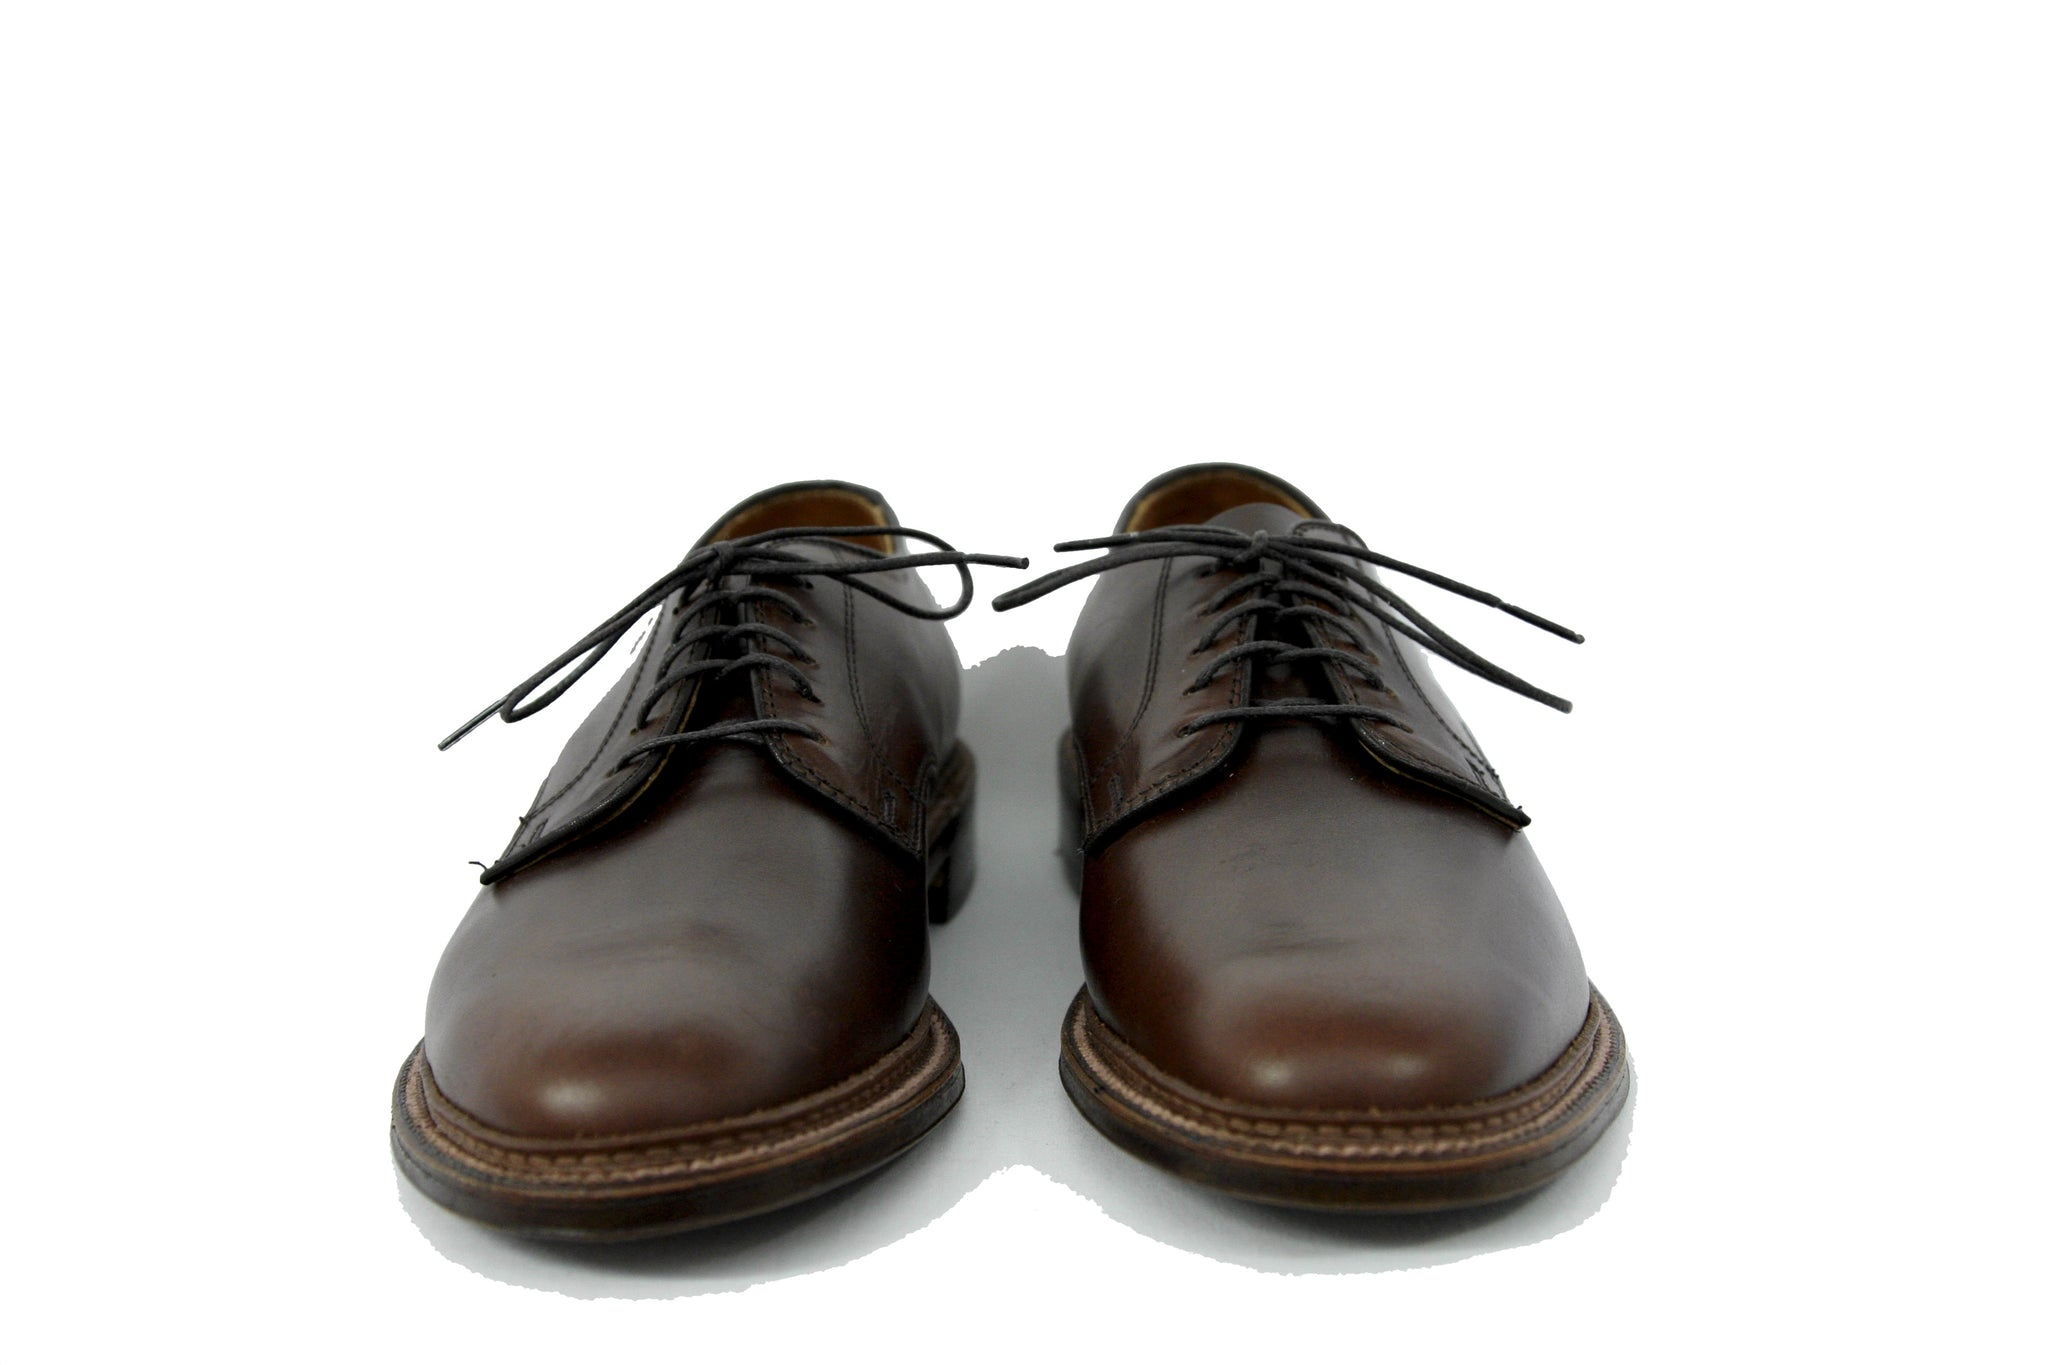 Alden Plain Toe Blucher in Dark Brown Style #29364